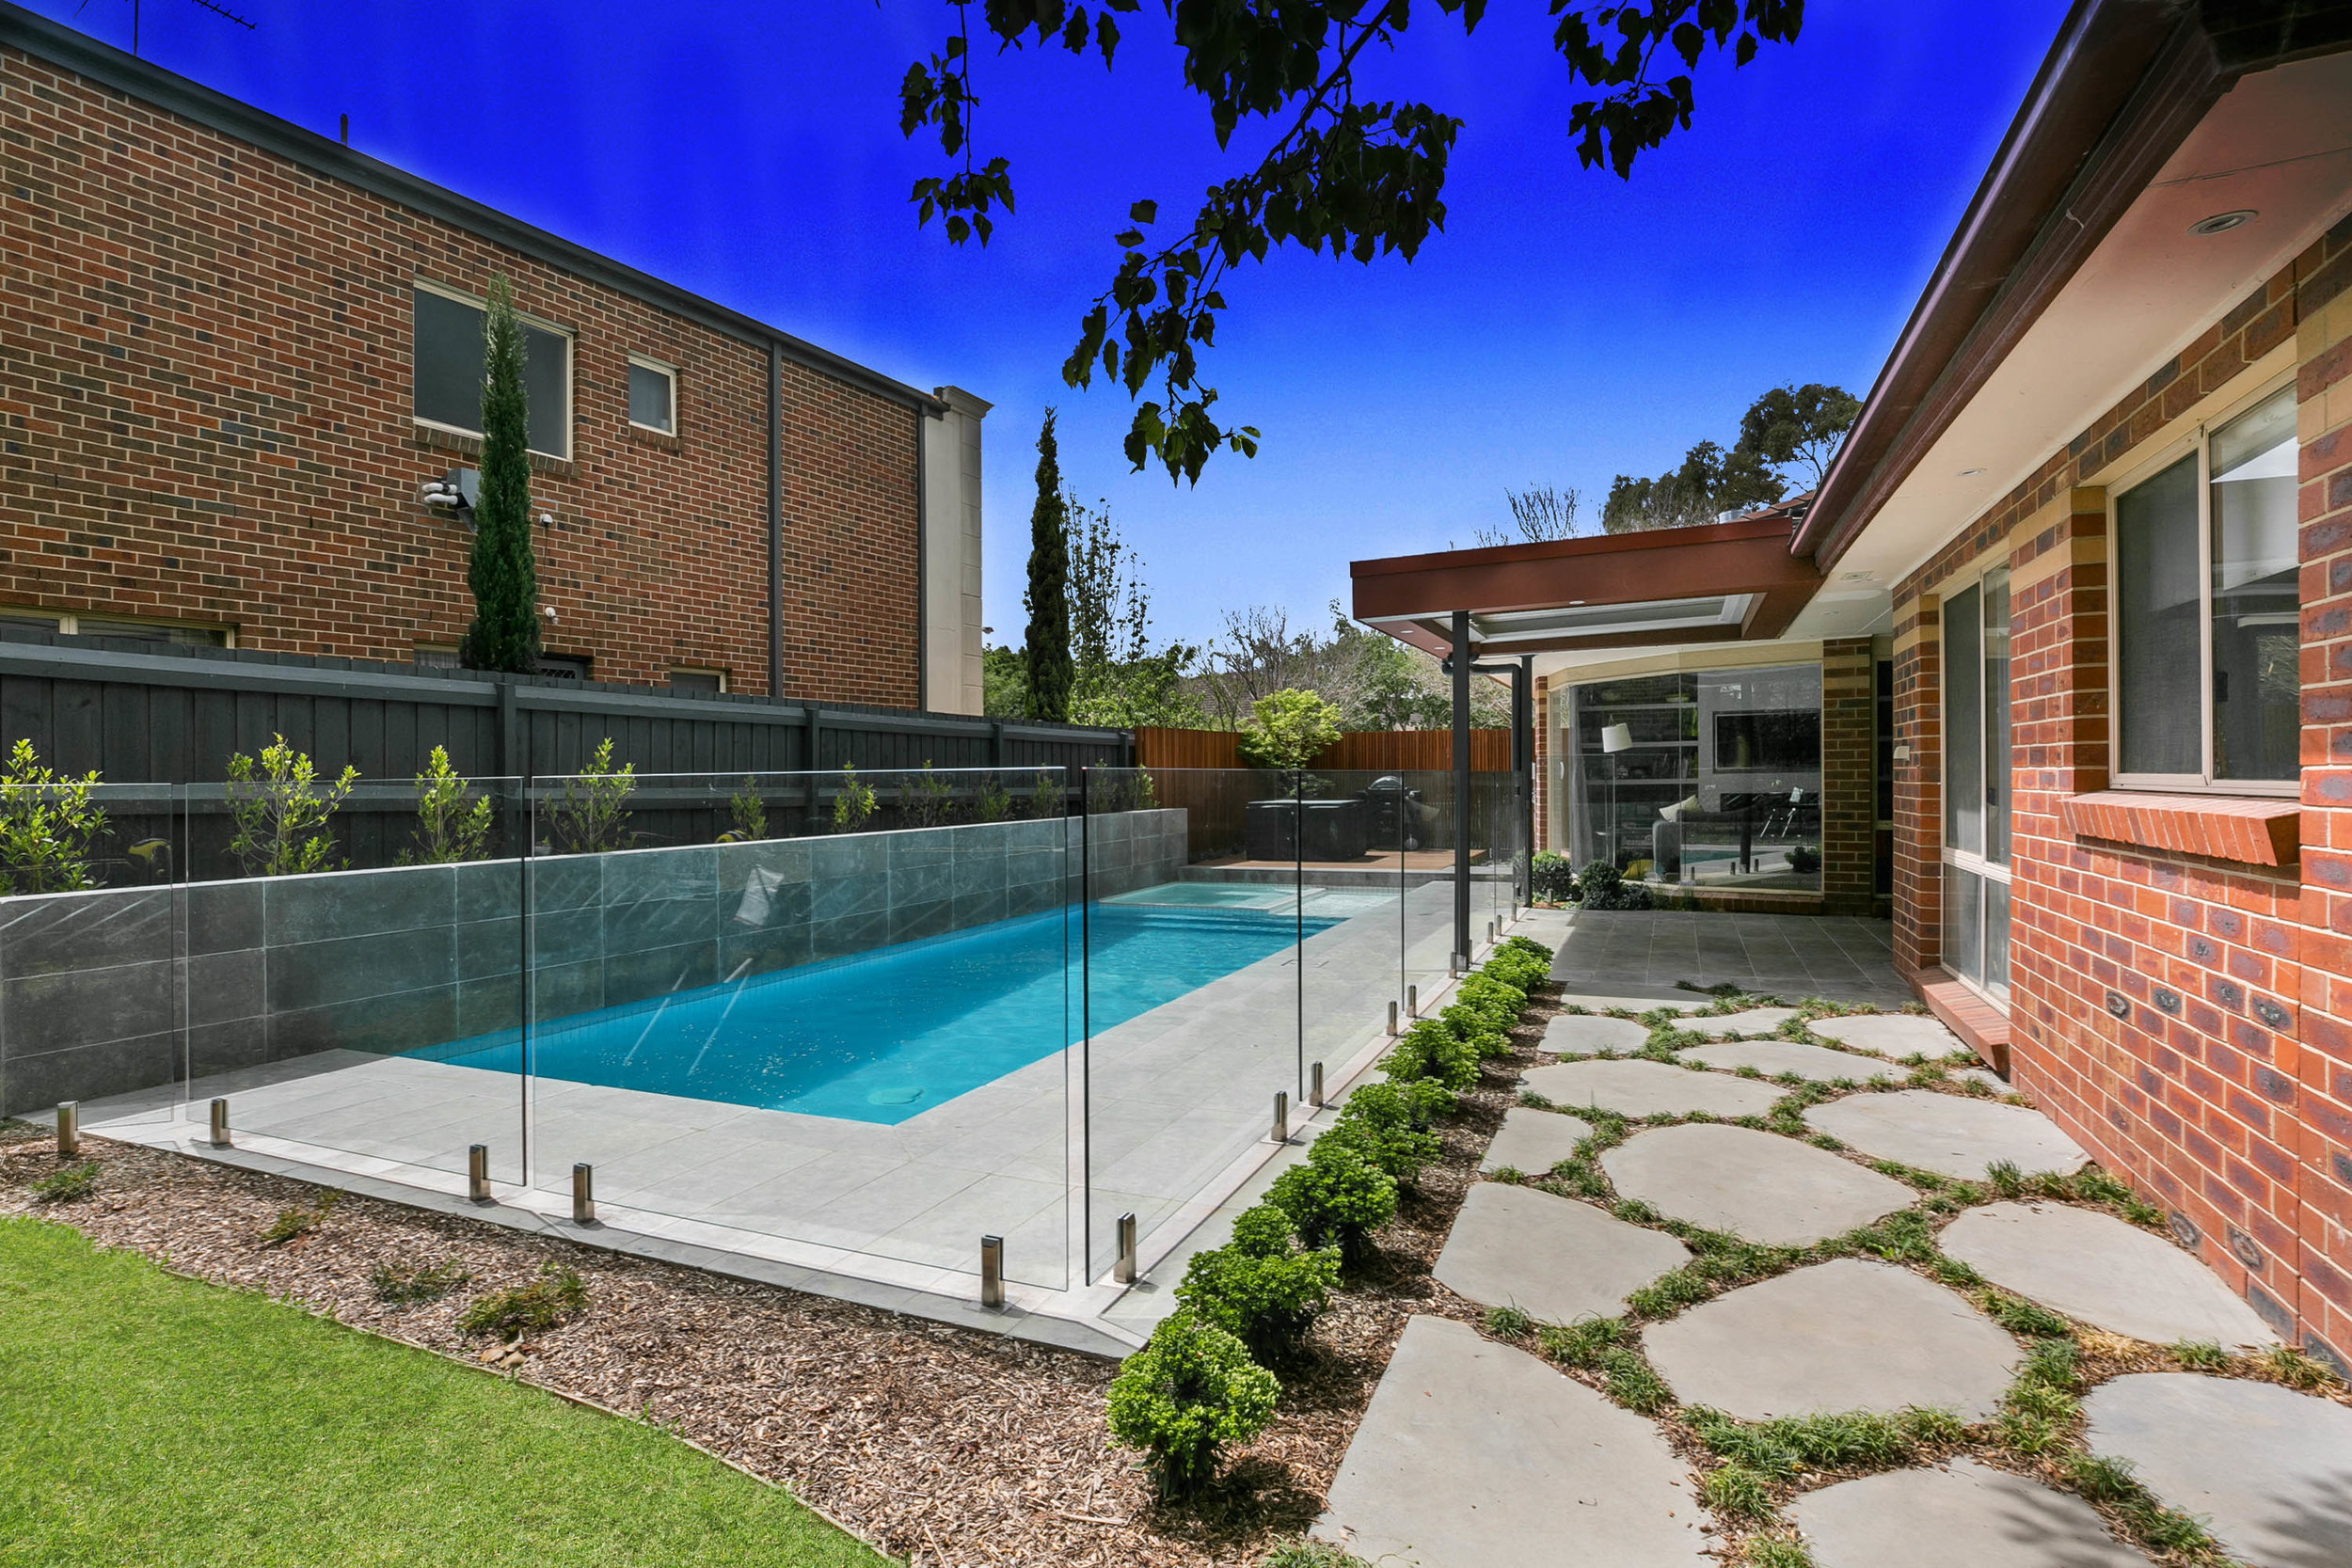 WILLIAMSTOWN PROJECT